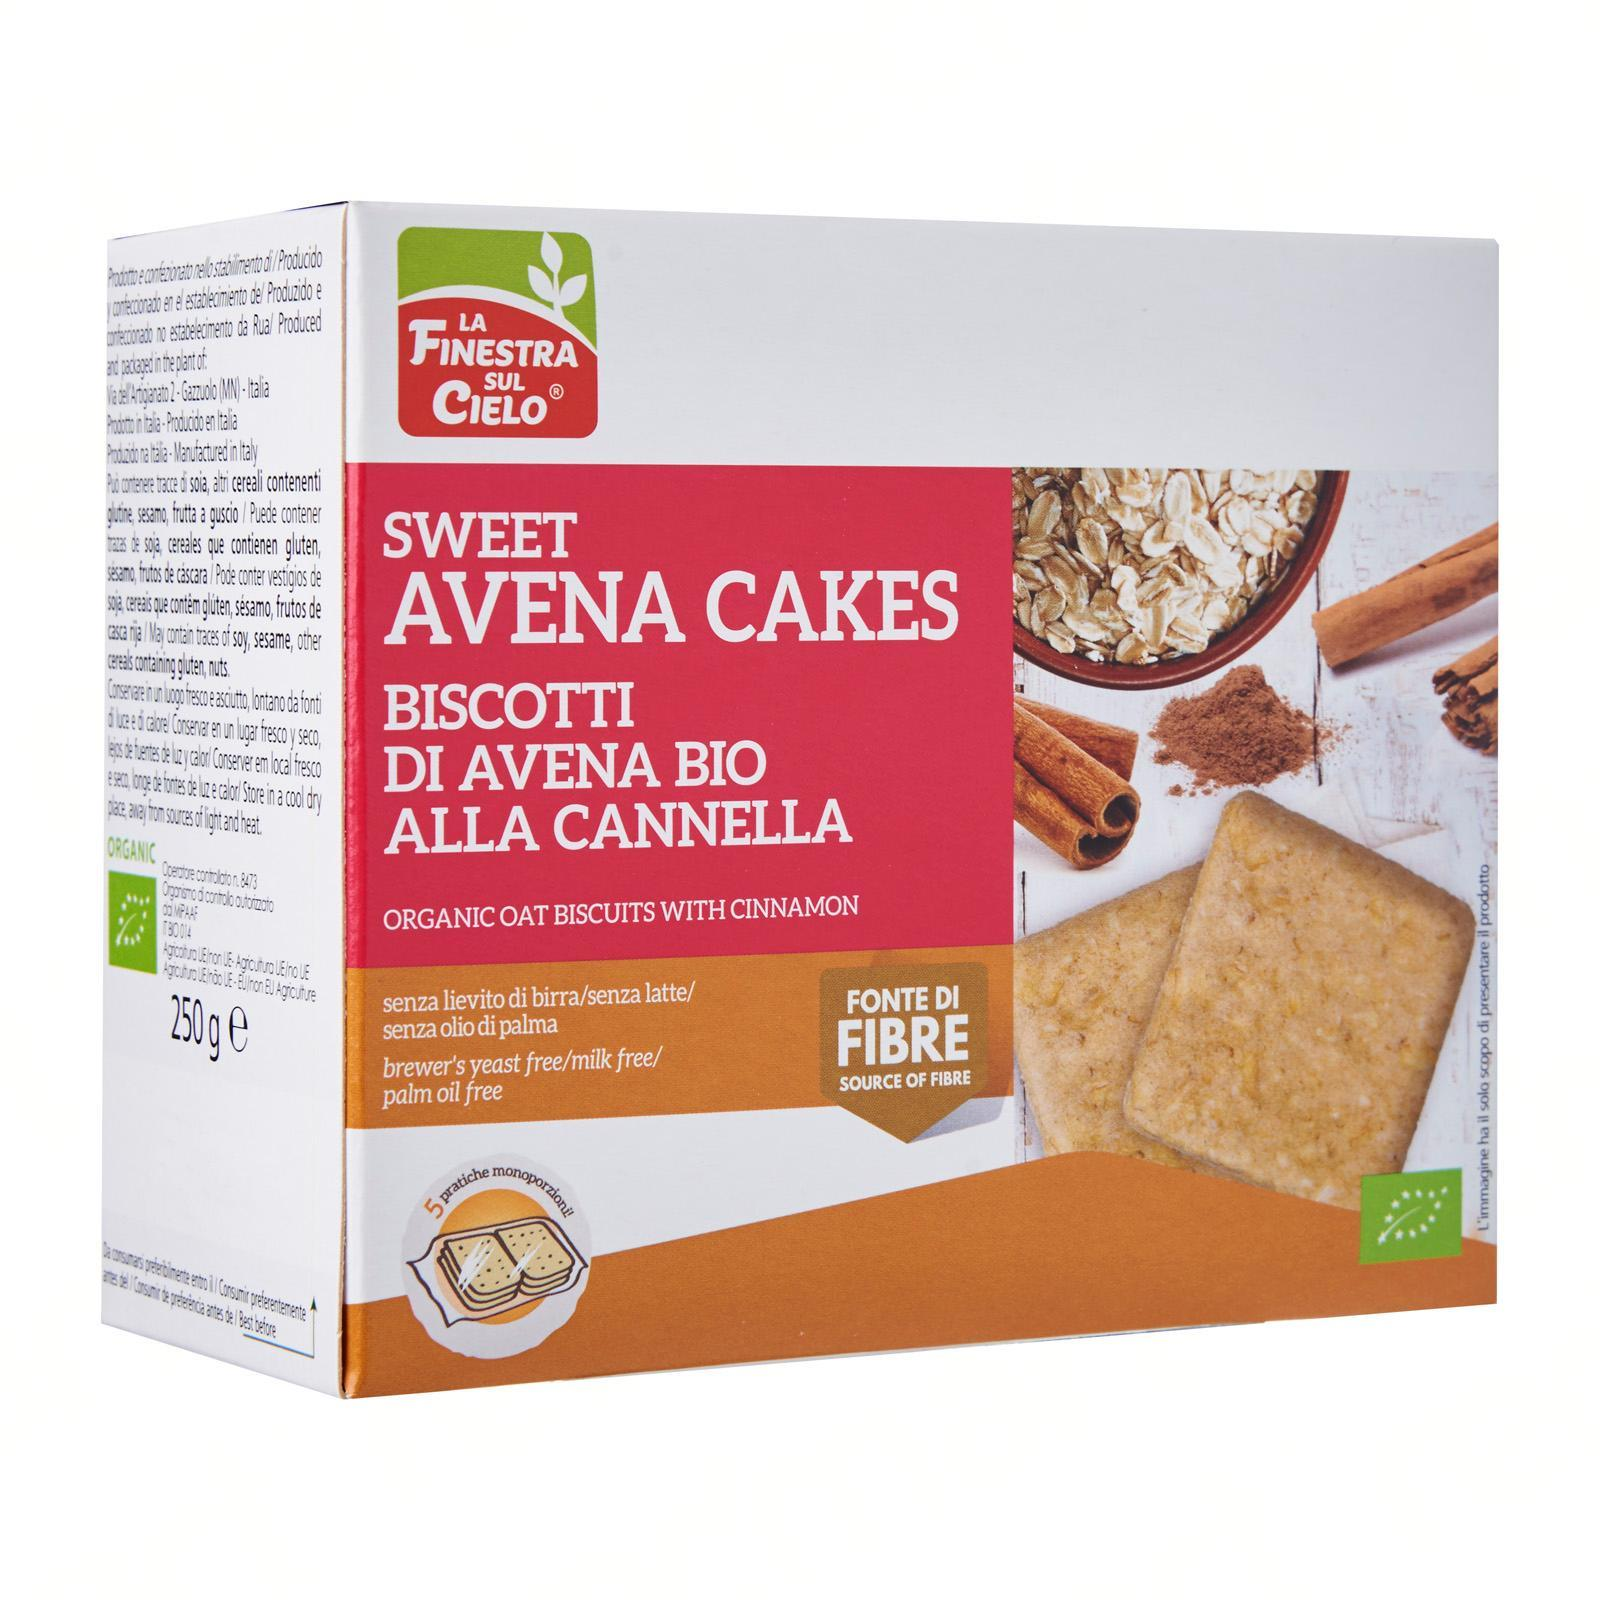 La Finestra Sul Cielo Organic Oat Biscuits With Cinnamon By Redmart.